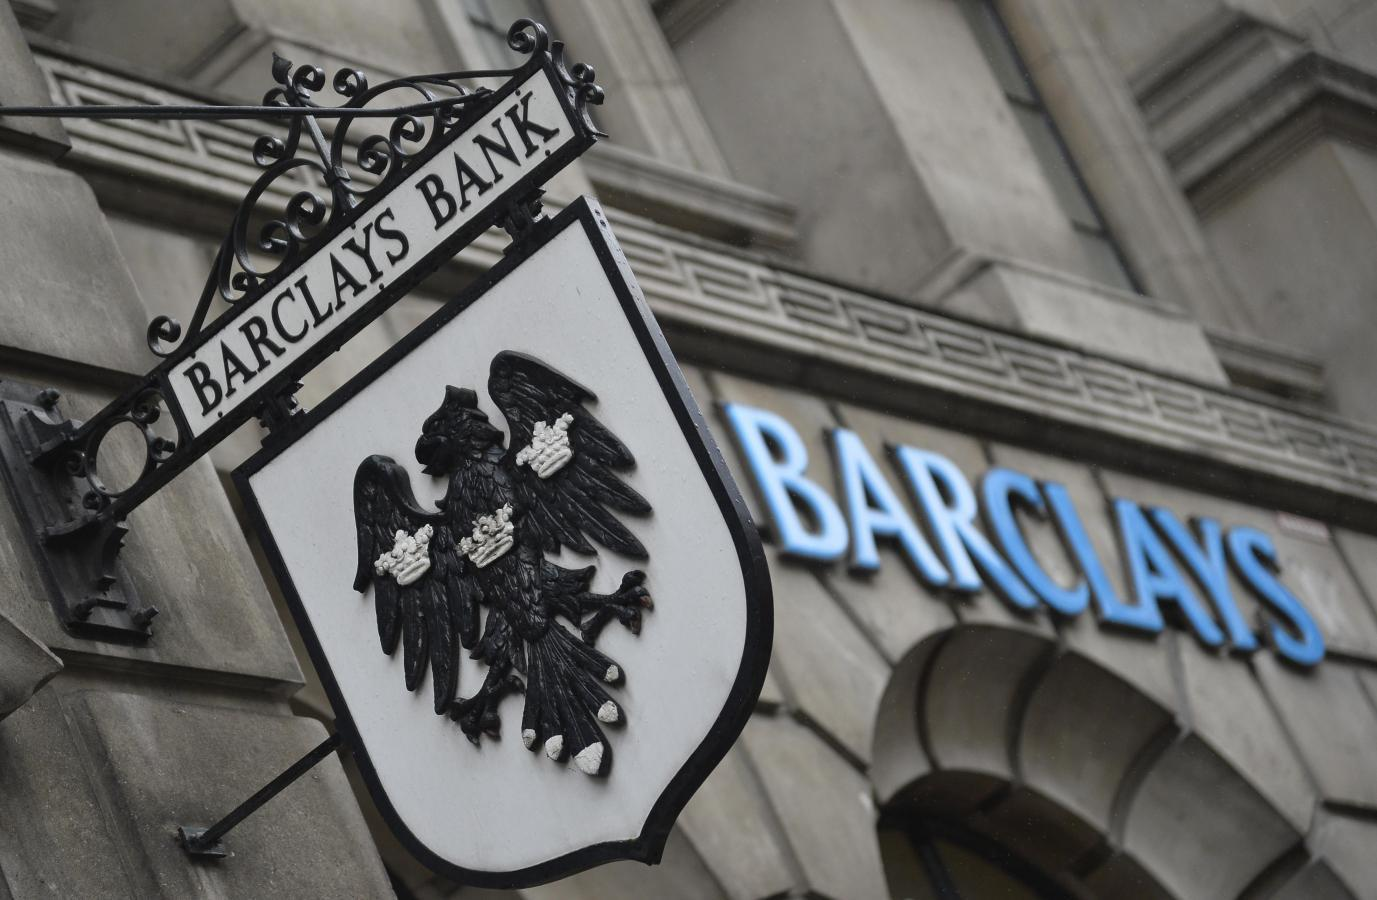 Barclays must hand over more ex-boss emails in Libor case